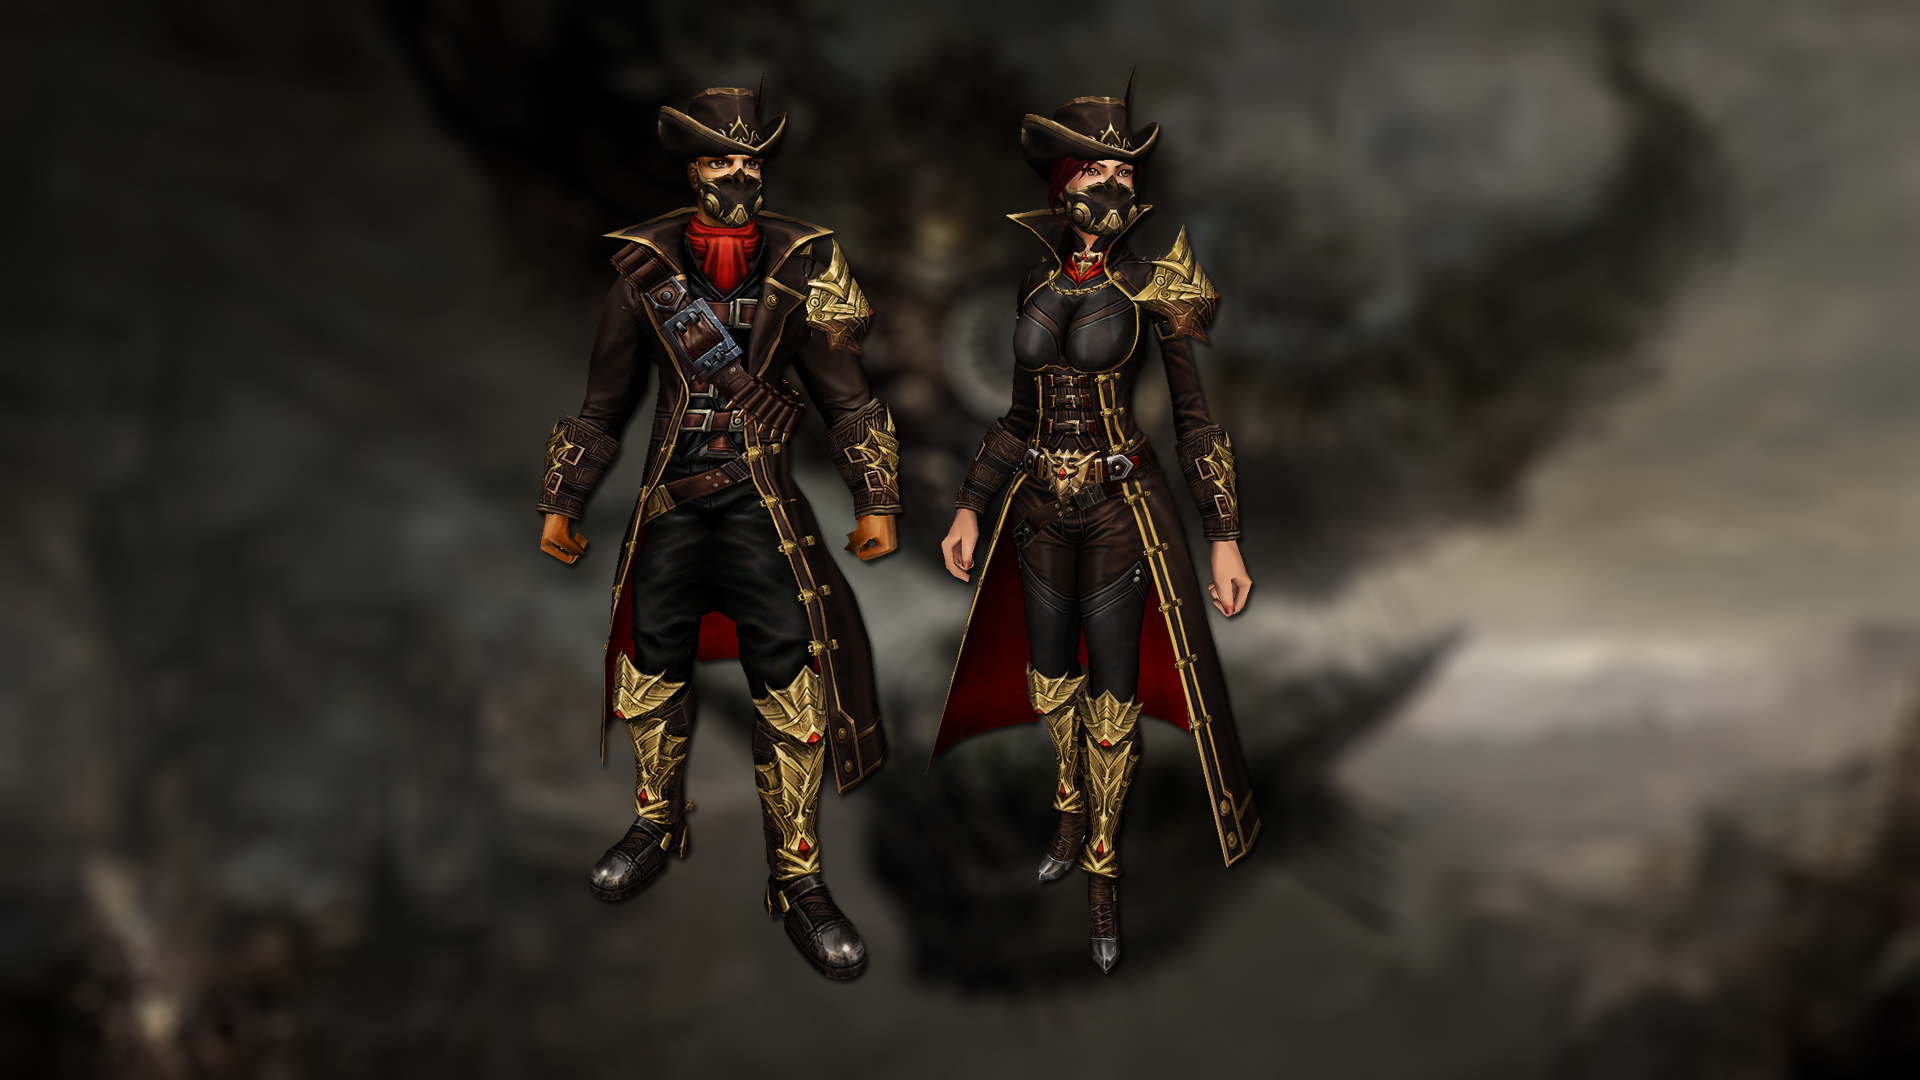 Adventure bandit costumes